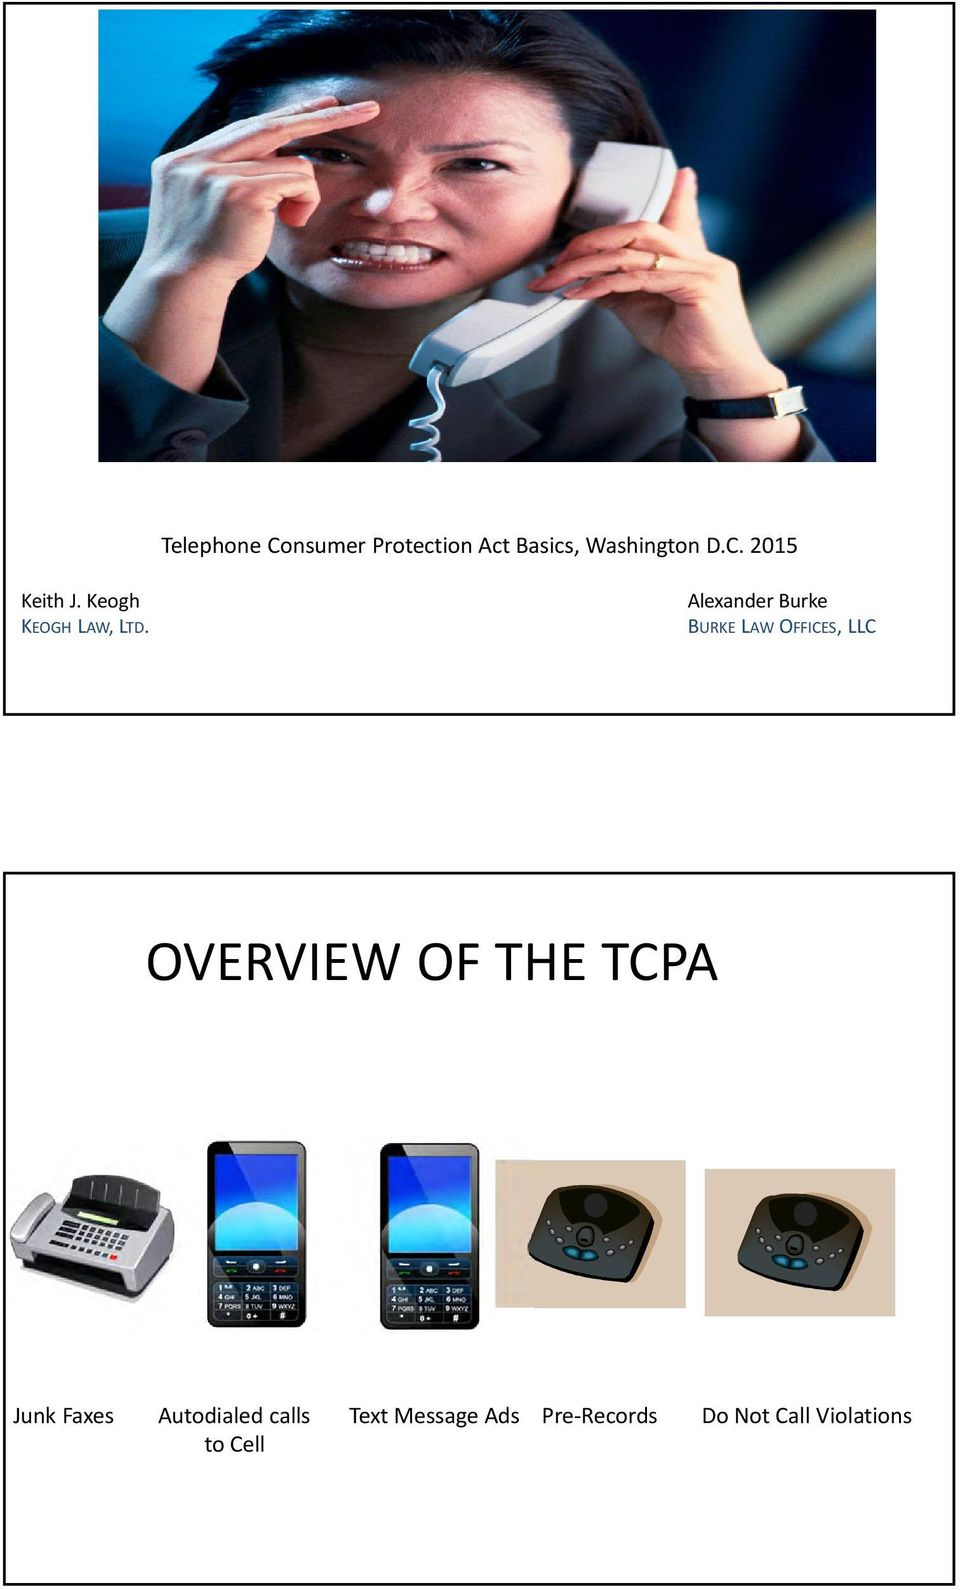 Alexander Burke BURKE LAW OFFICES, LLC OVERVIEW OF THE TCPA